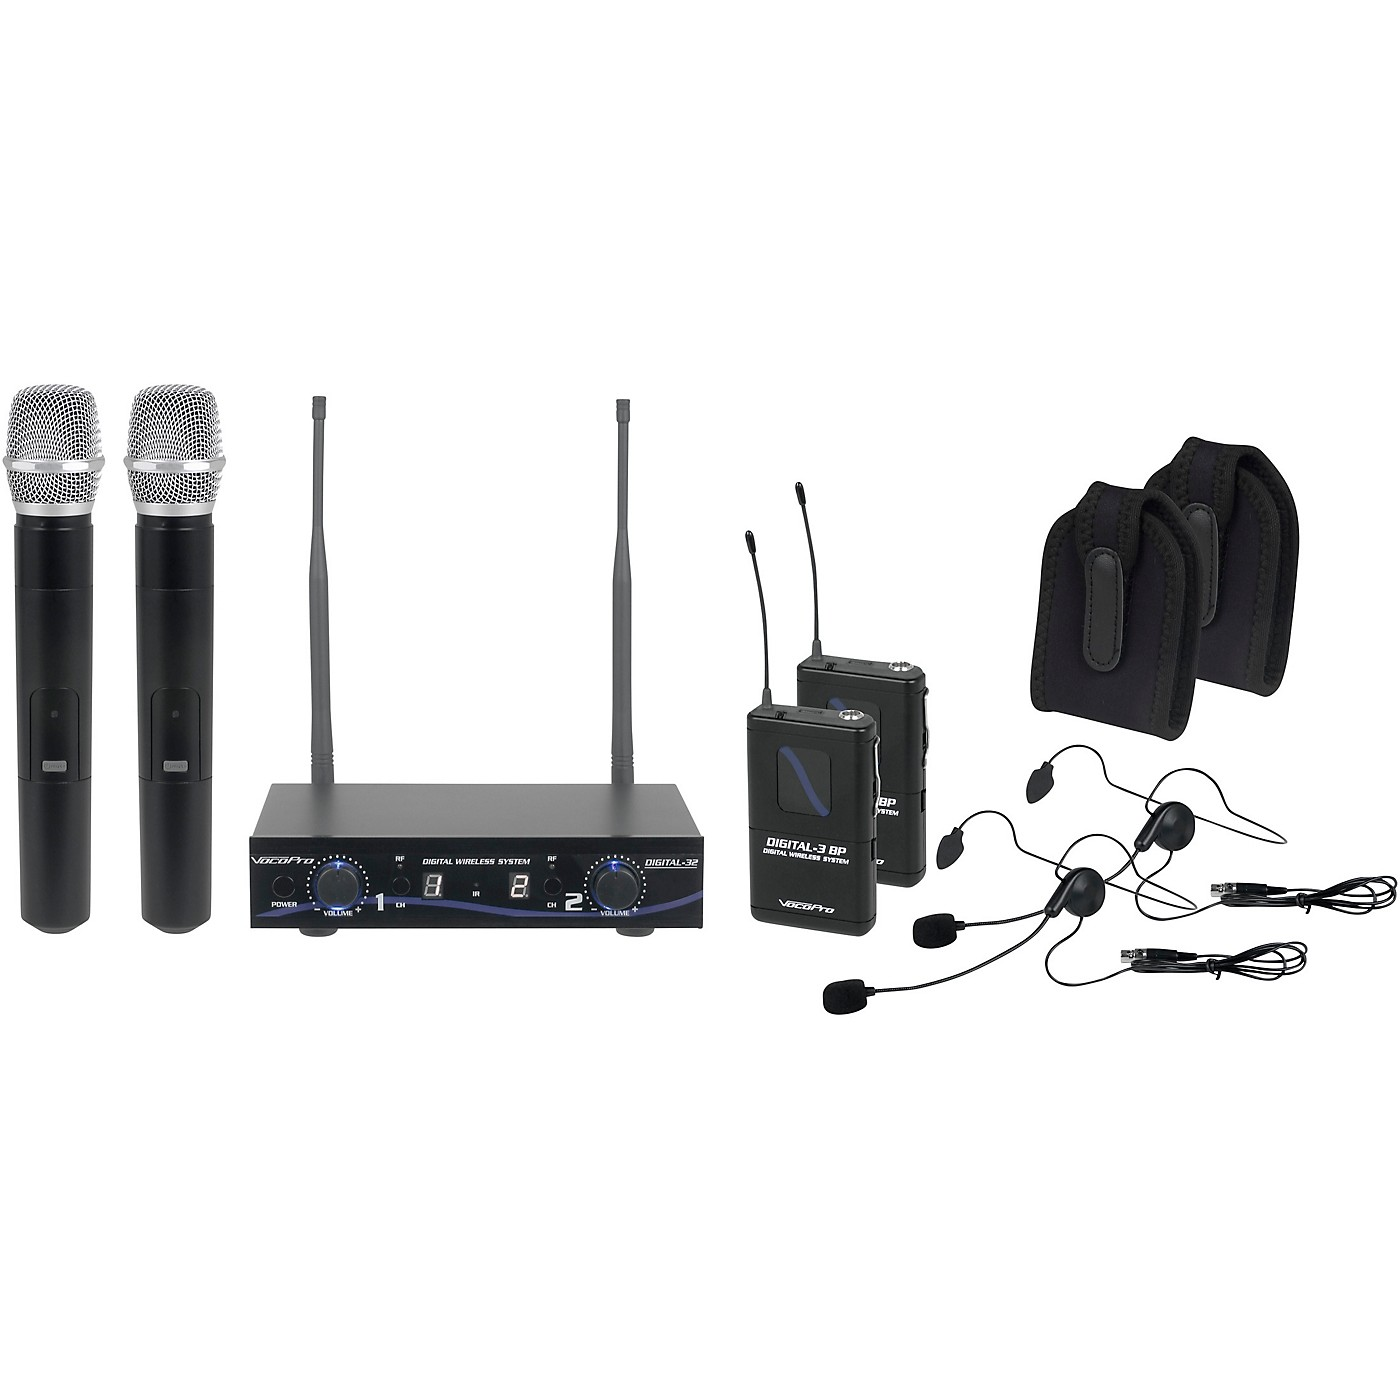 Vocopro DIGITAL-32-ULTRA Wireless System, Dual-Channel thumbnail